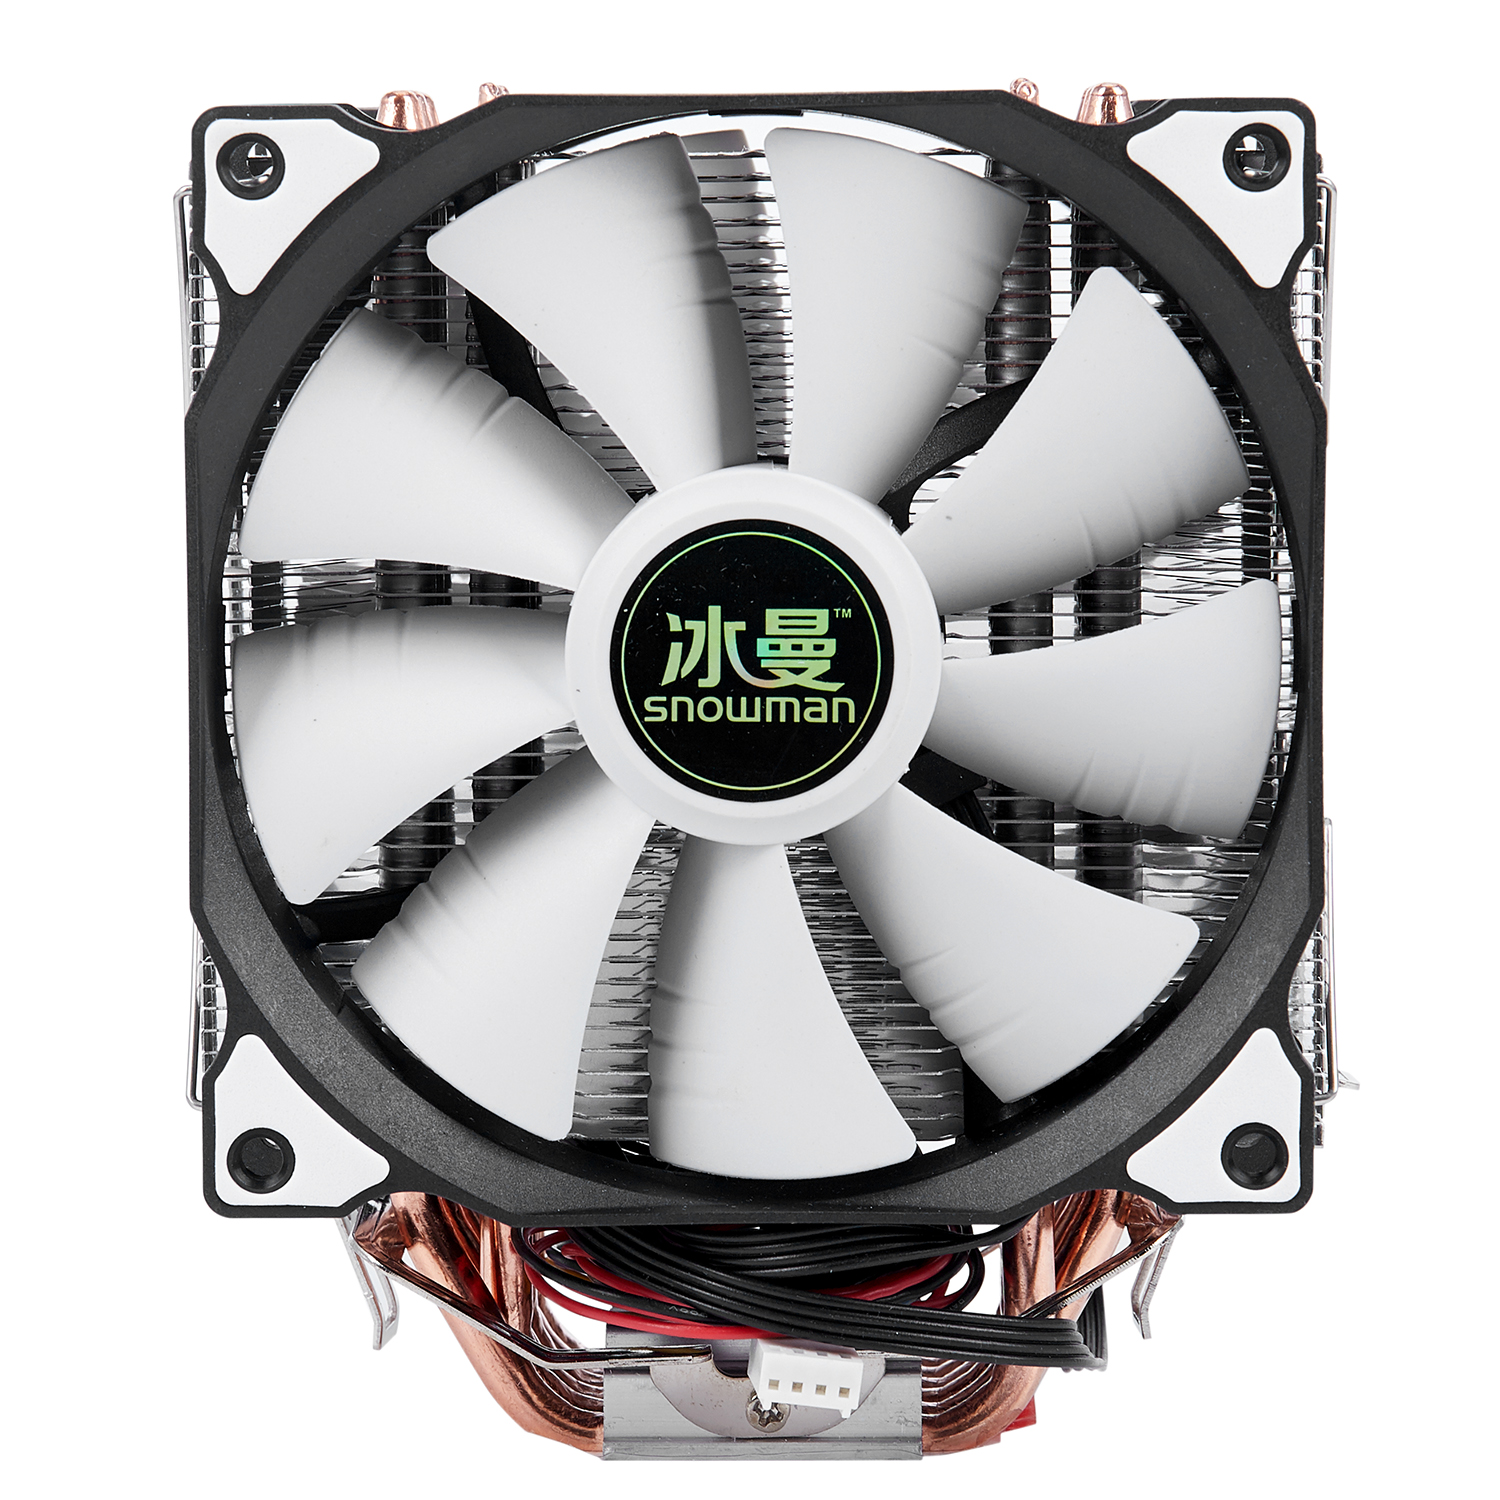 SNOWMAN 4PIN CPU Cooler 6 Heatpipe Double Fans Cooling 12cm Fan LGA775 1151 115x 1366 Support Intel AMD